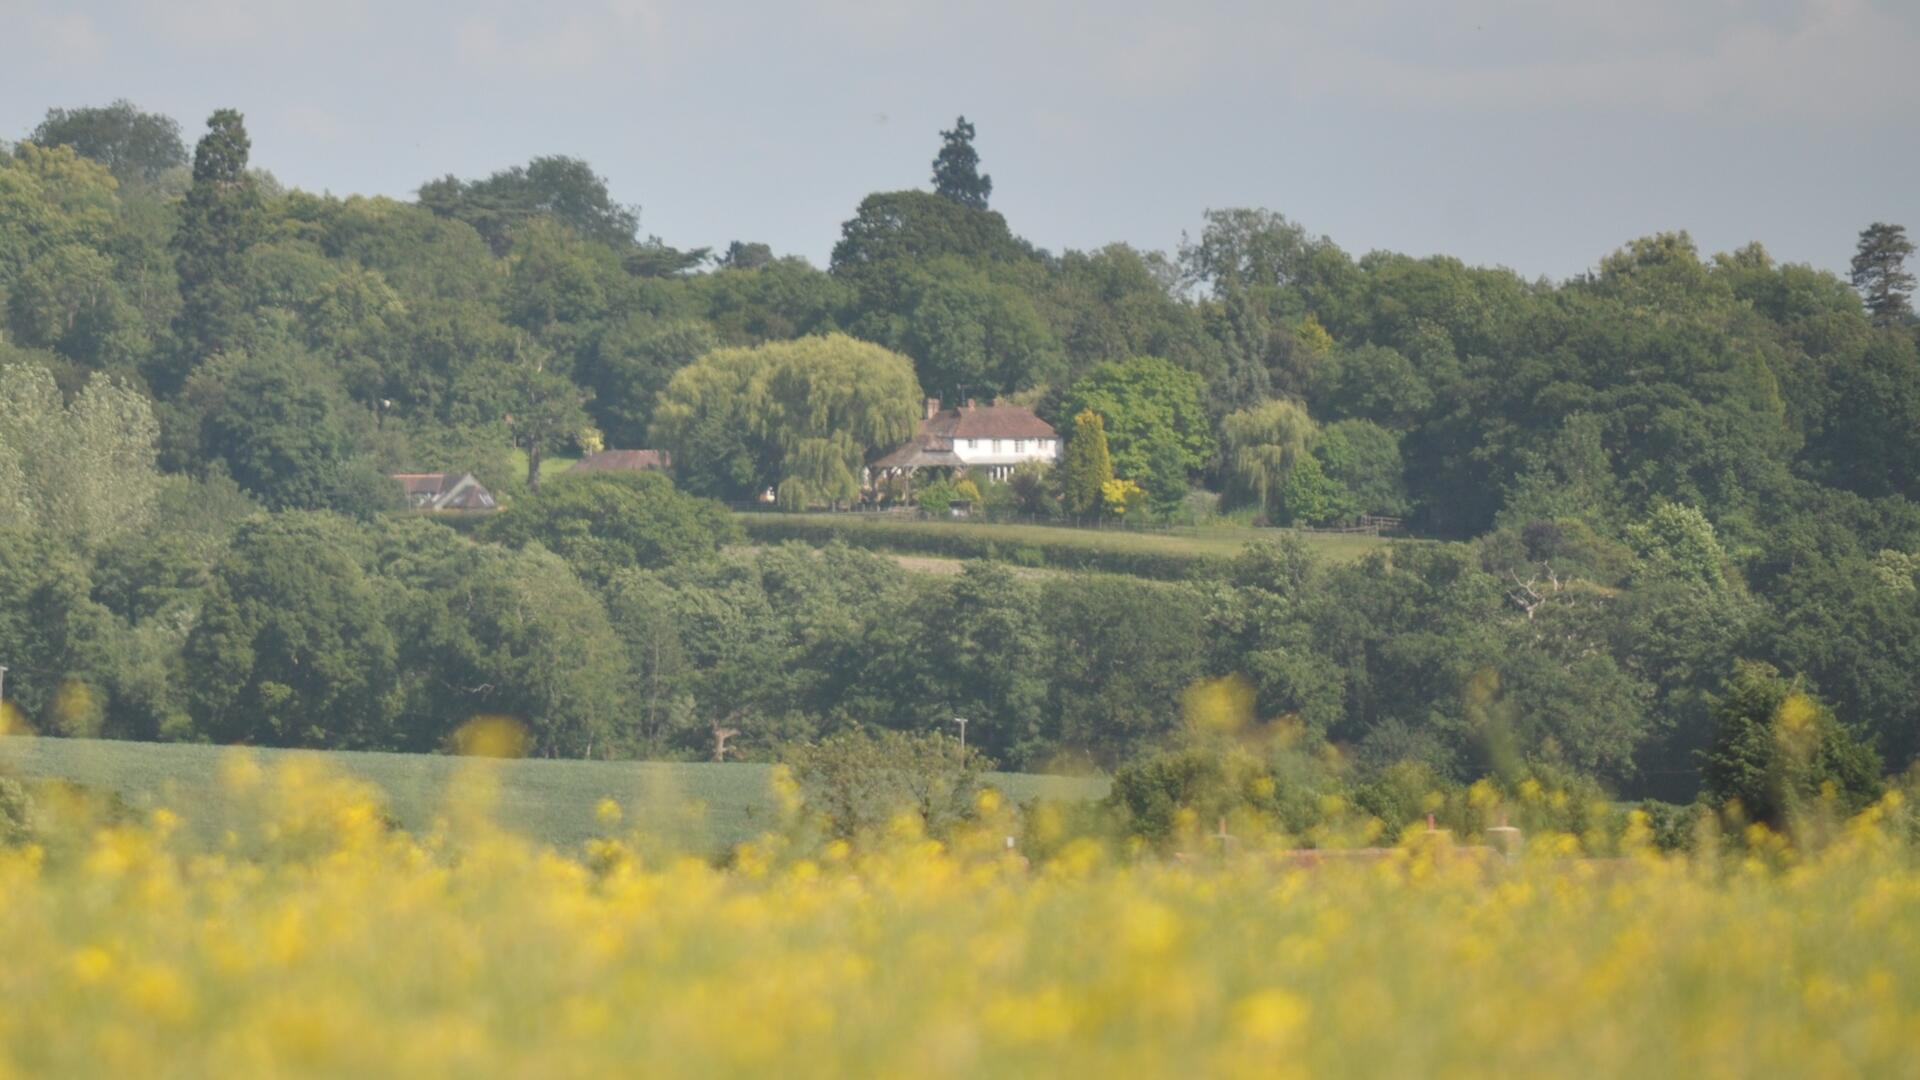 Child-friendly holiday cottages in the UK - ATHF